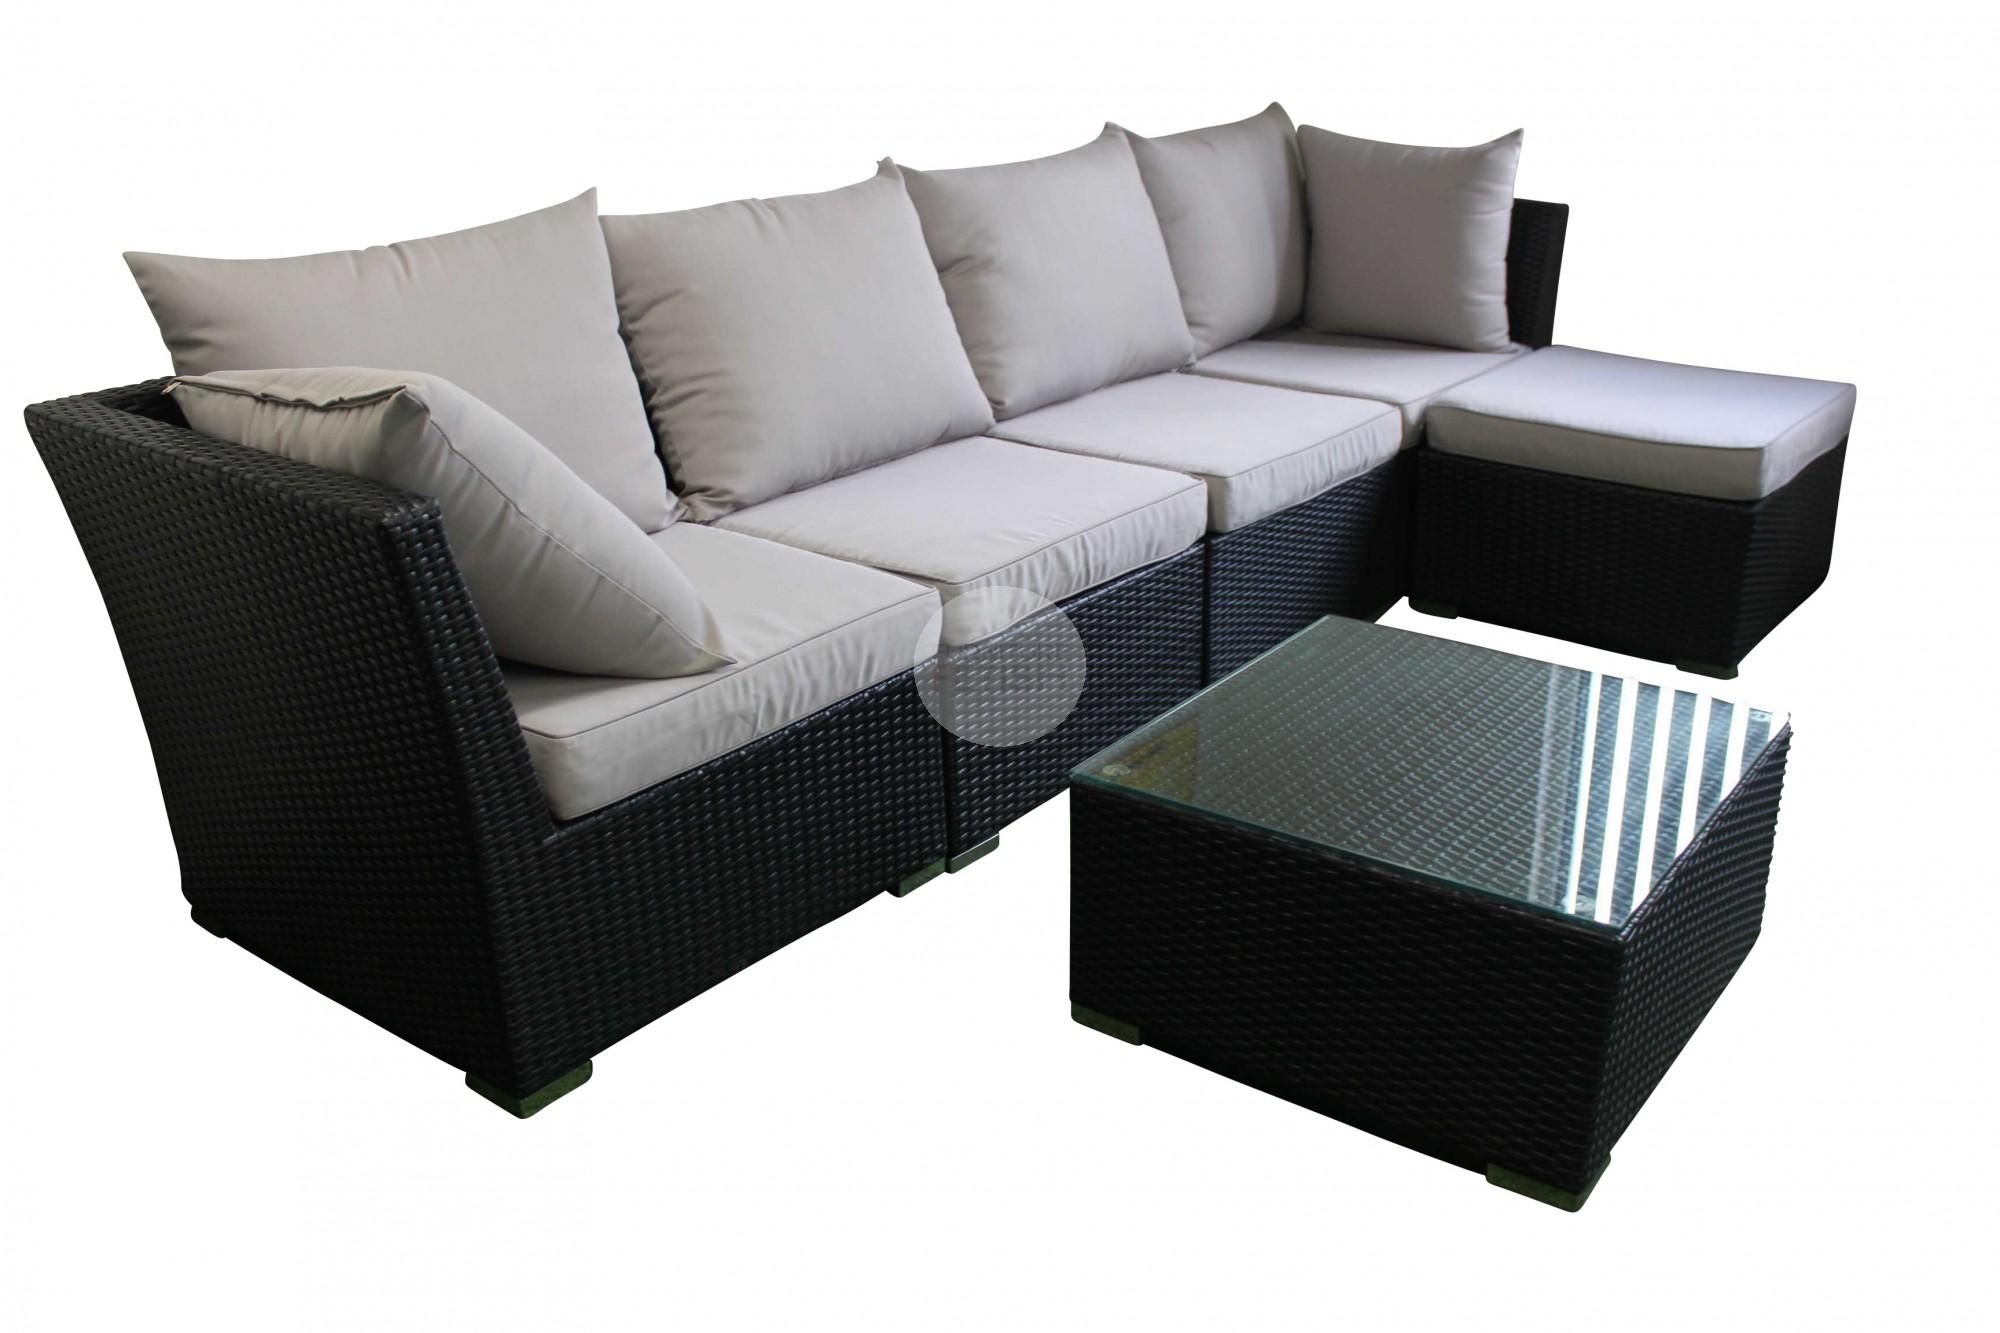 Outdoor Sofa Lounge With Chaise & Coffee Table – Rattan Wicker Regarding Black Wicker Sofas (Image 17 of 20)